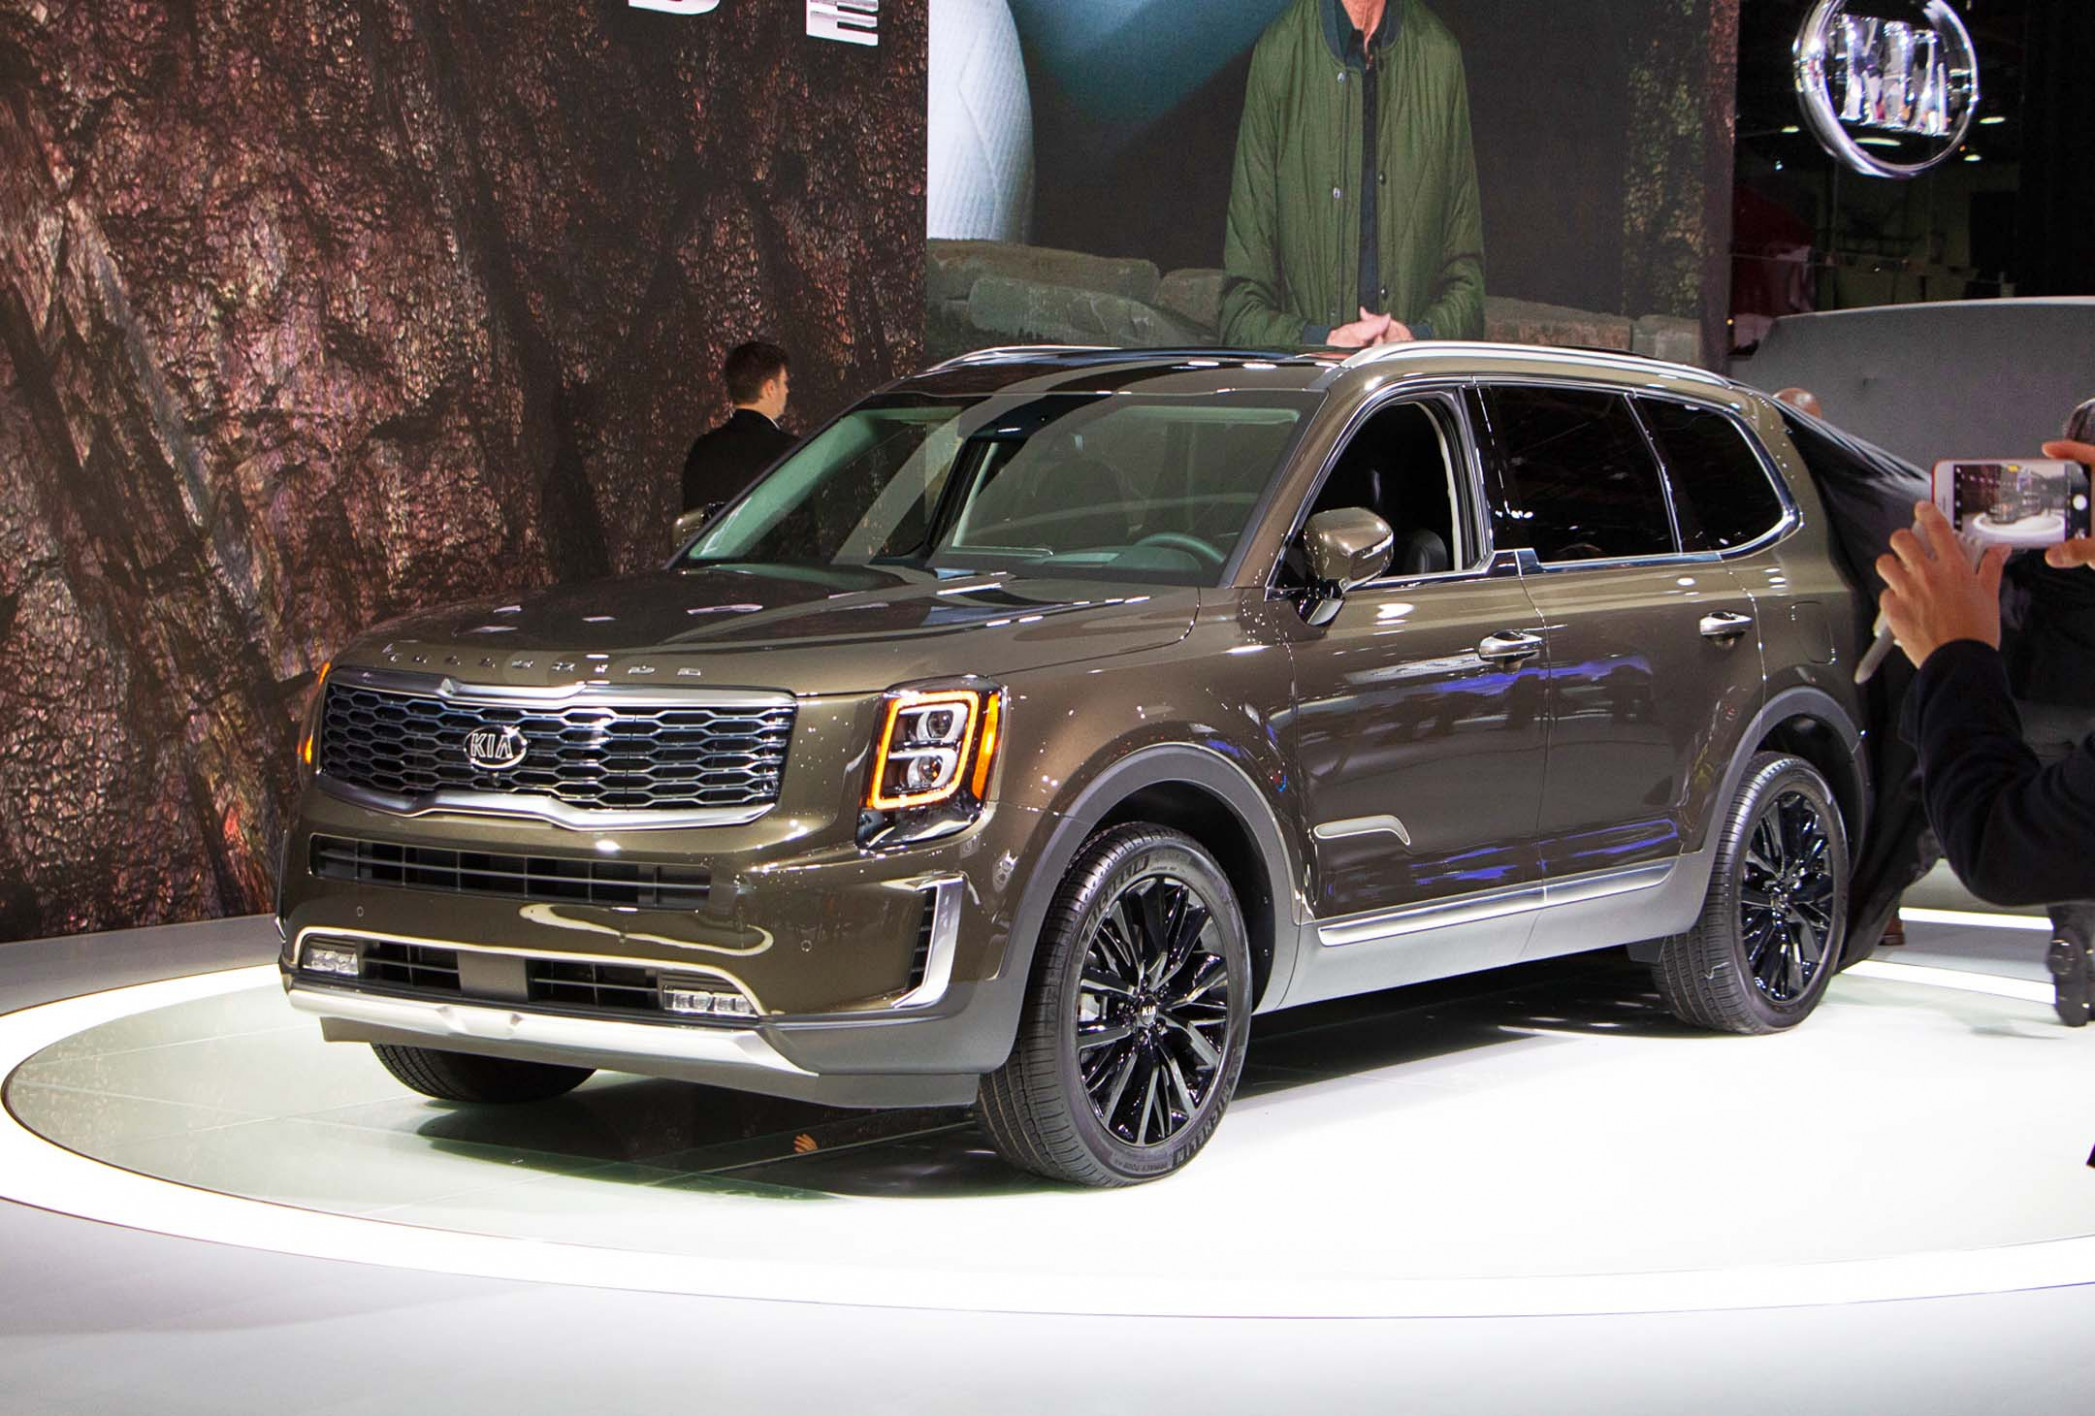 7 Kia Telluride Preview - kia brochure 2020